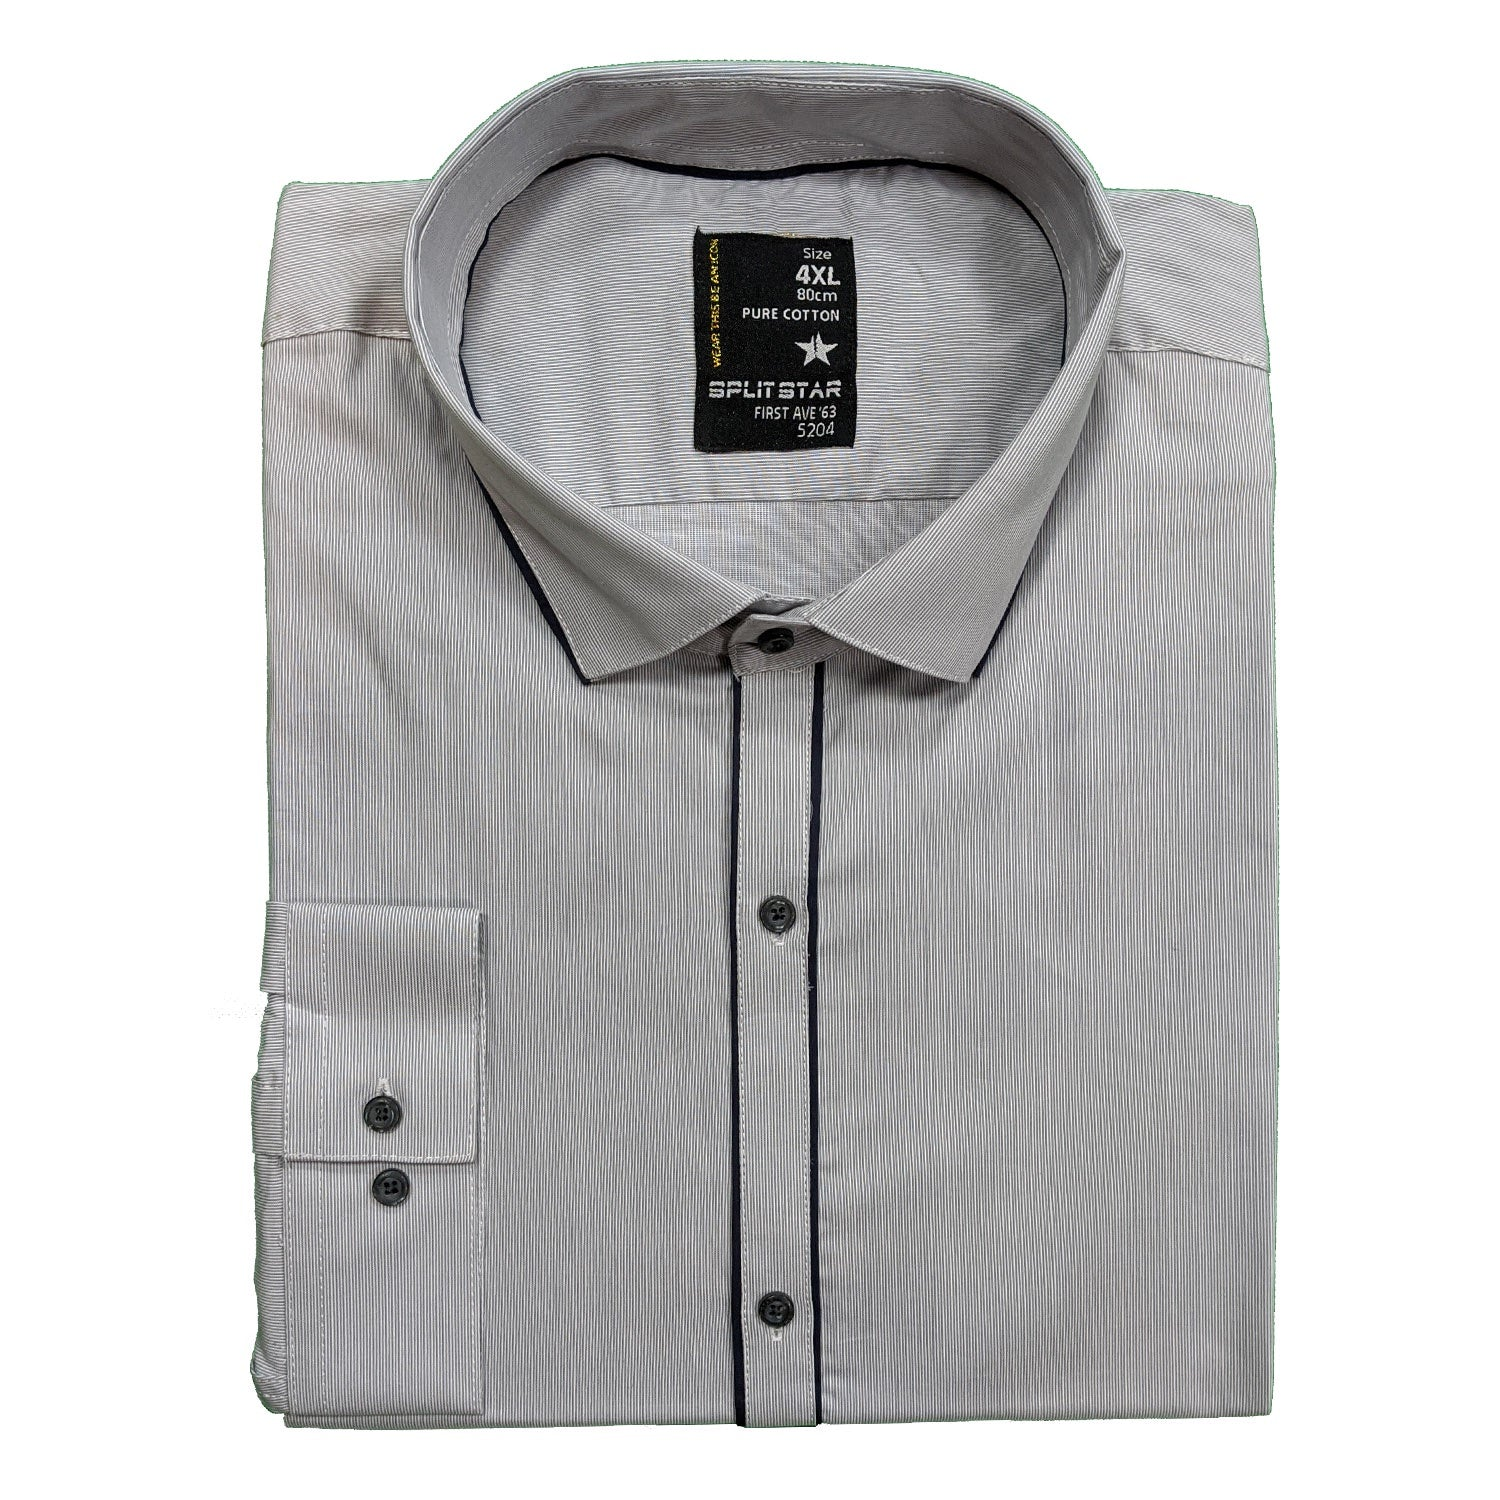 Splitstar L/S Shirt - KS11049 - Absolute - Grey 1